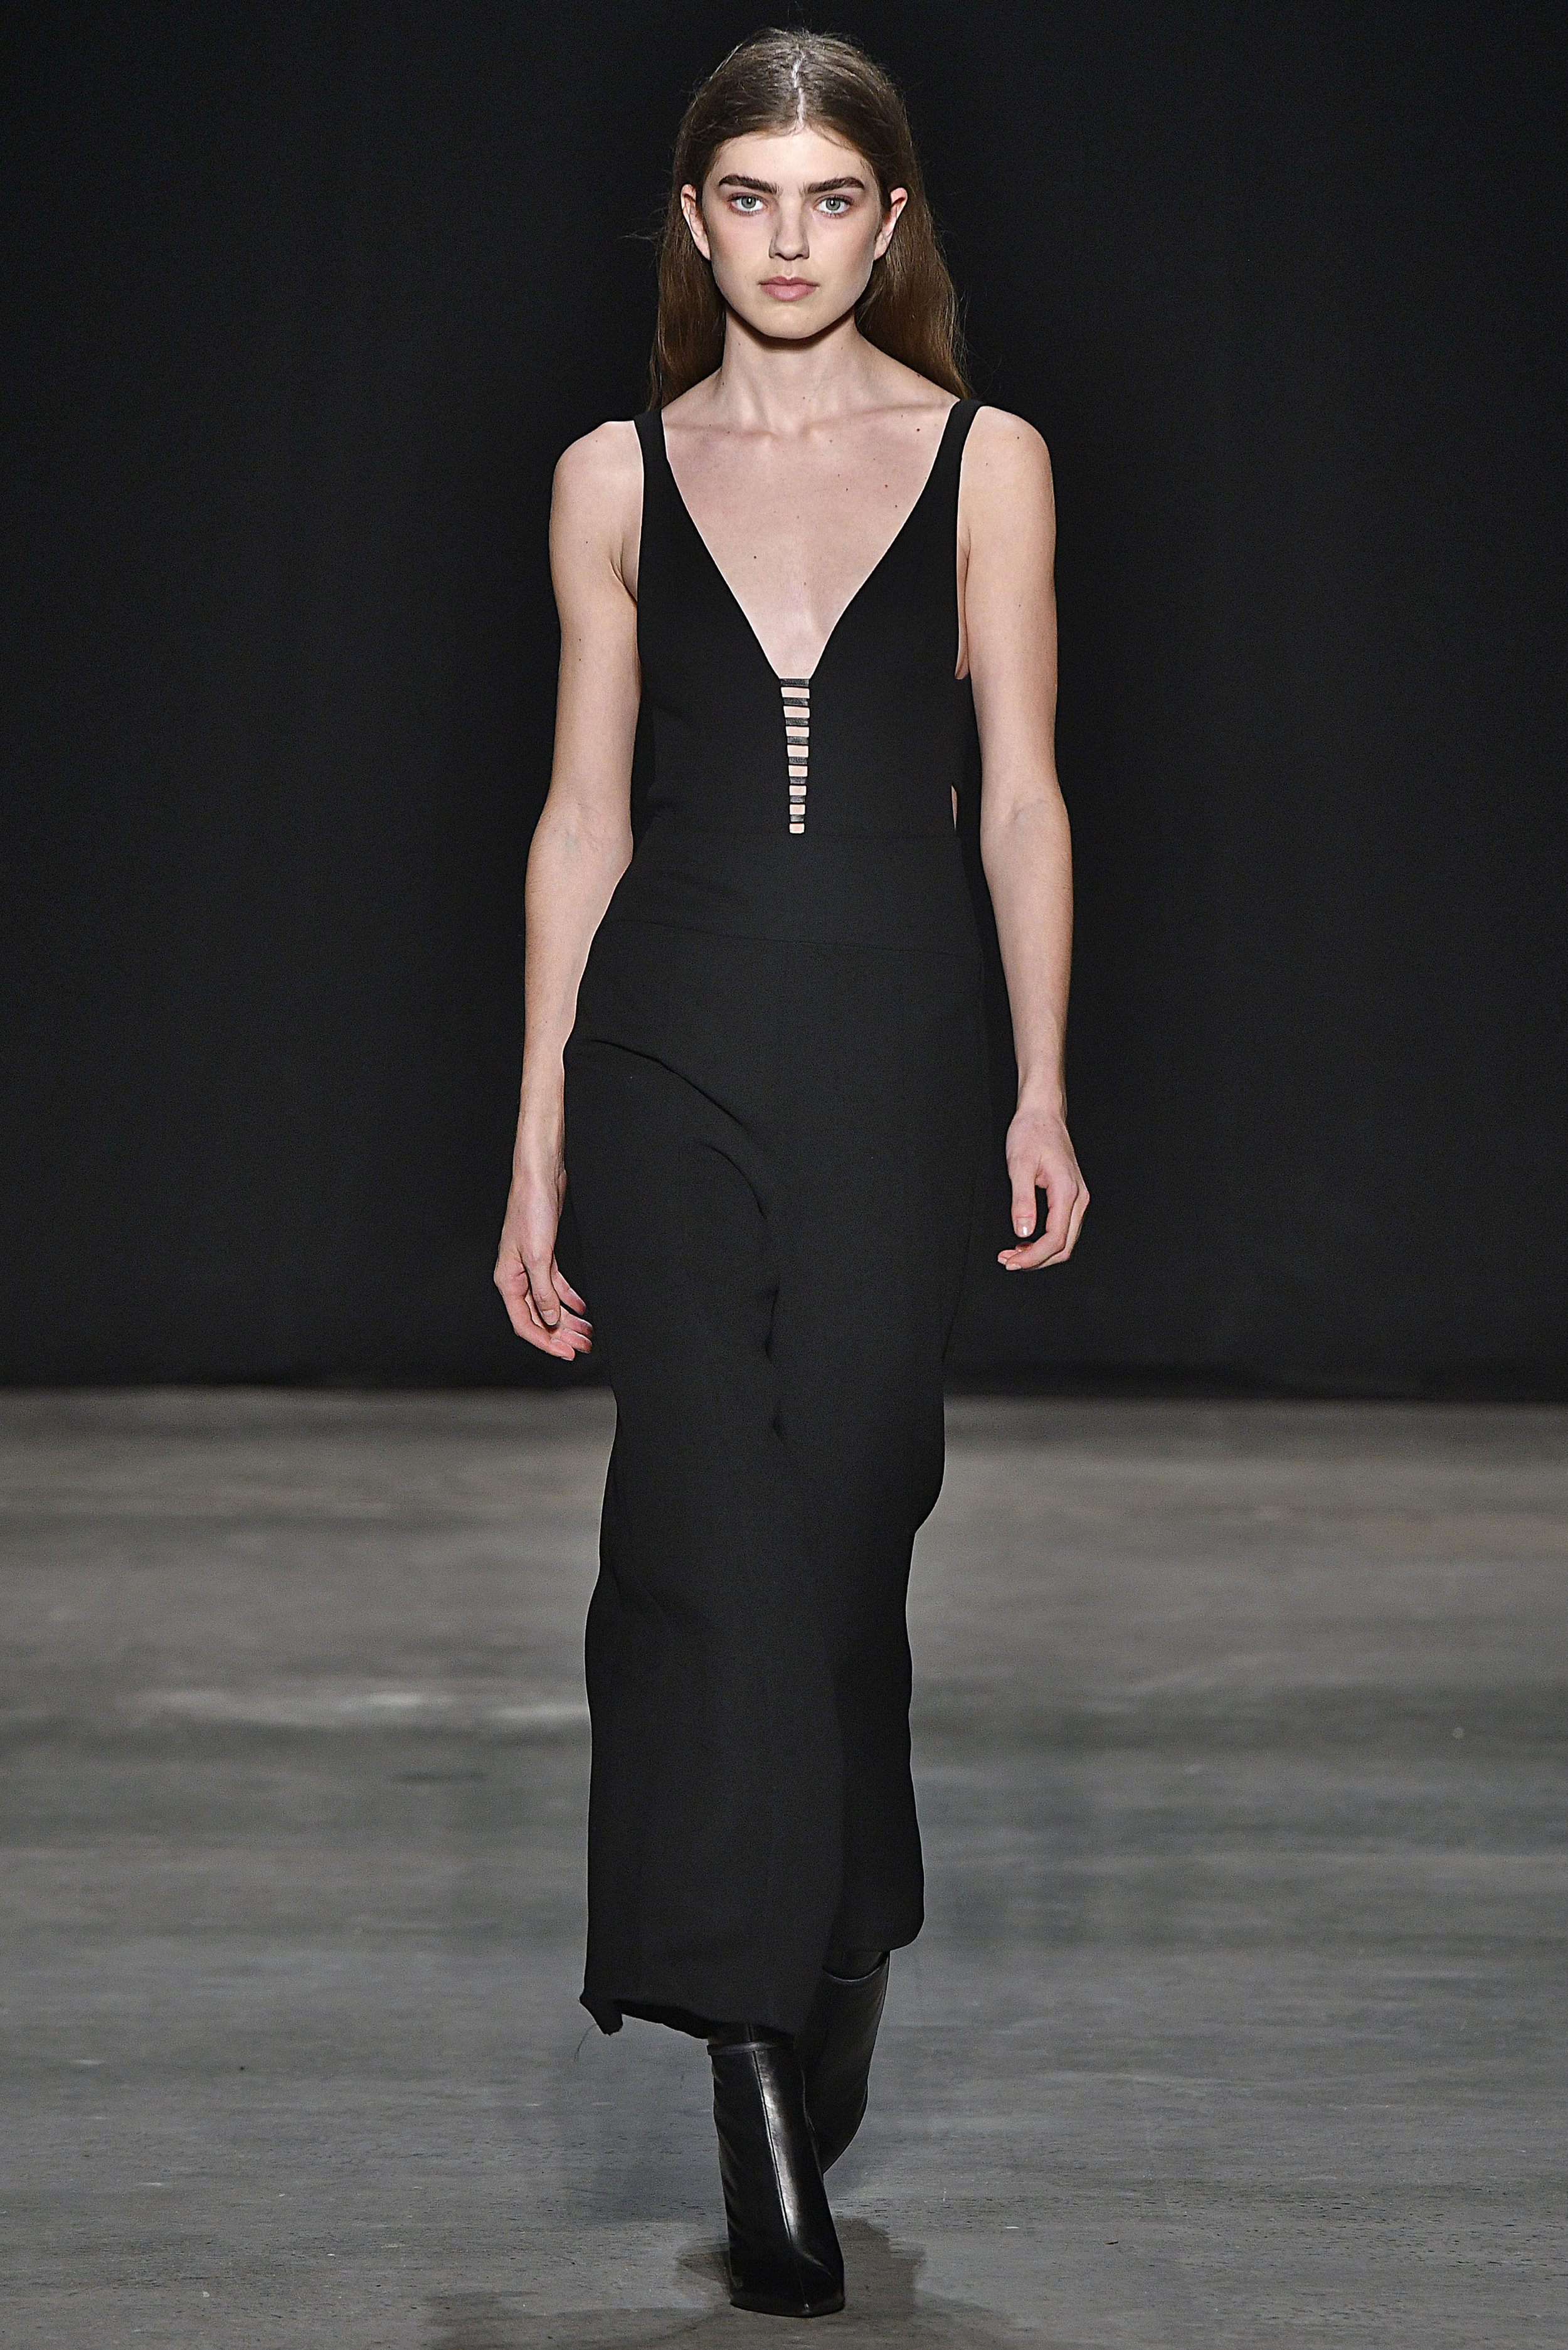 Narciso Rodriguez Fall 2017 collection. Black wool gauze jumpsuit.